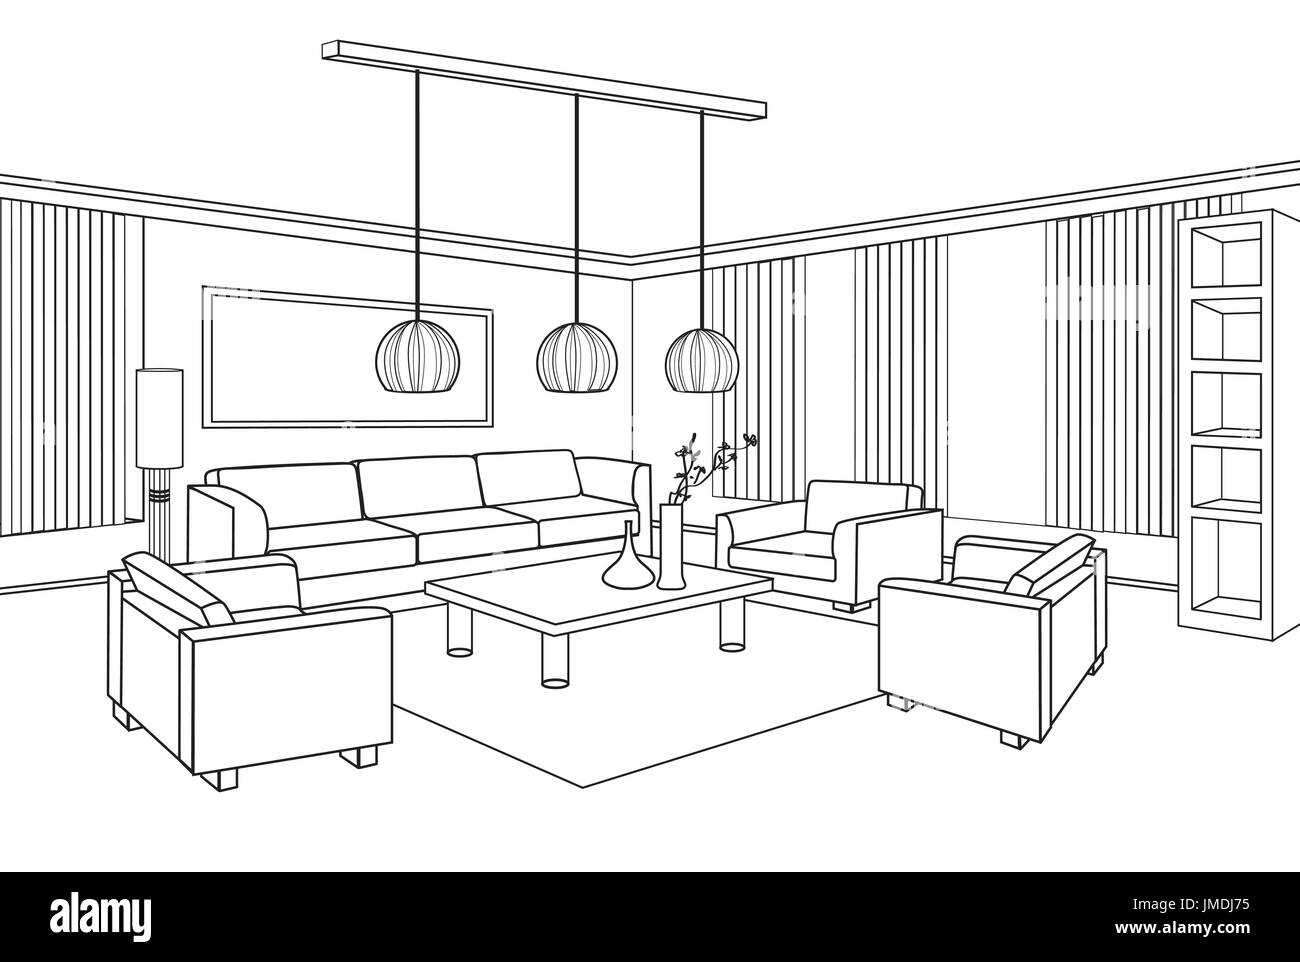 Living Room View. Interior Outline Sketch. Furniture